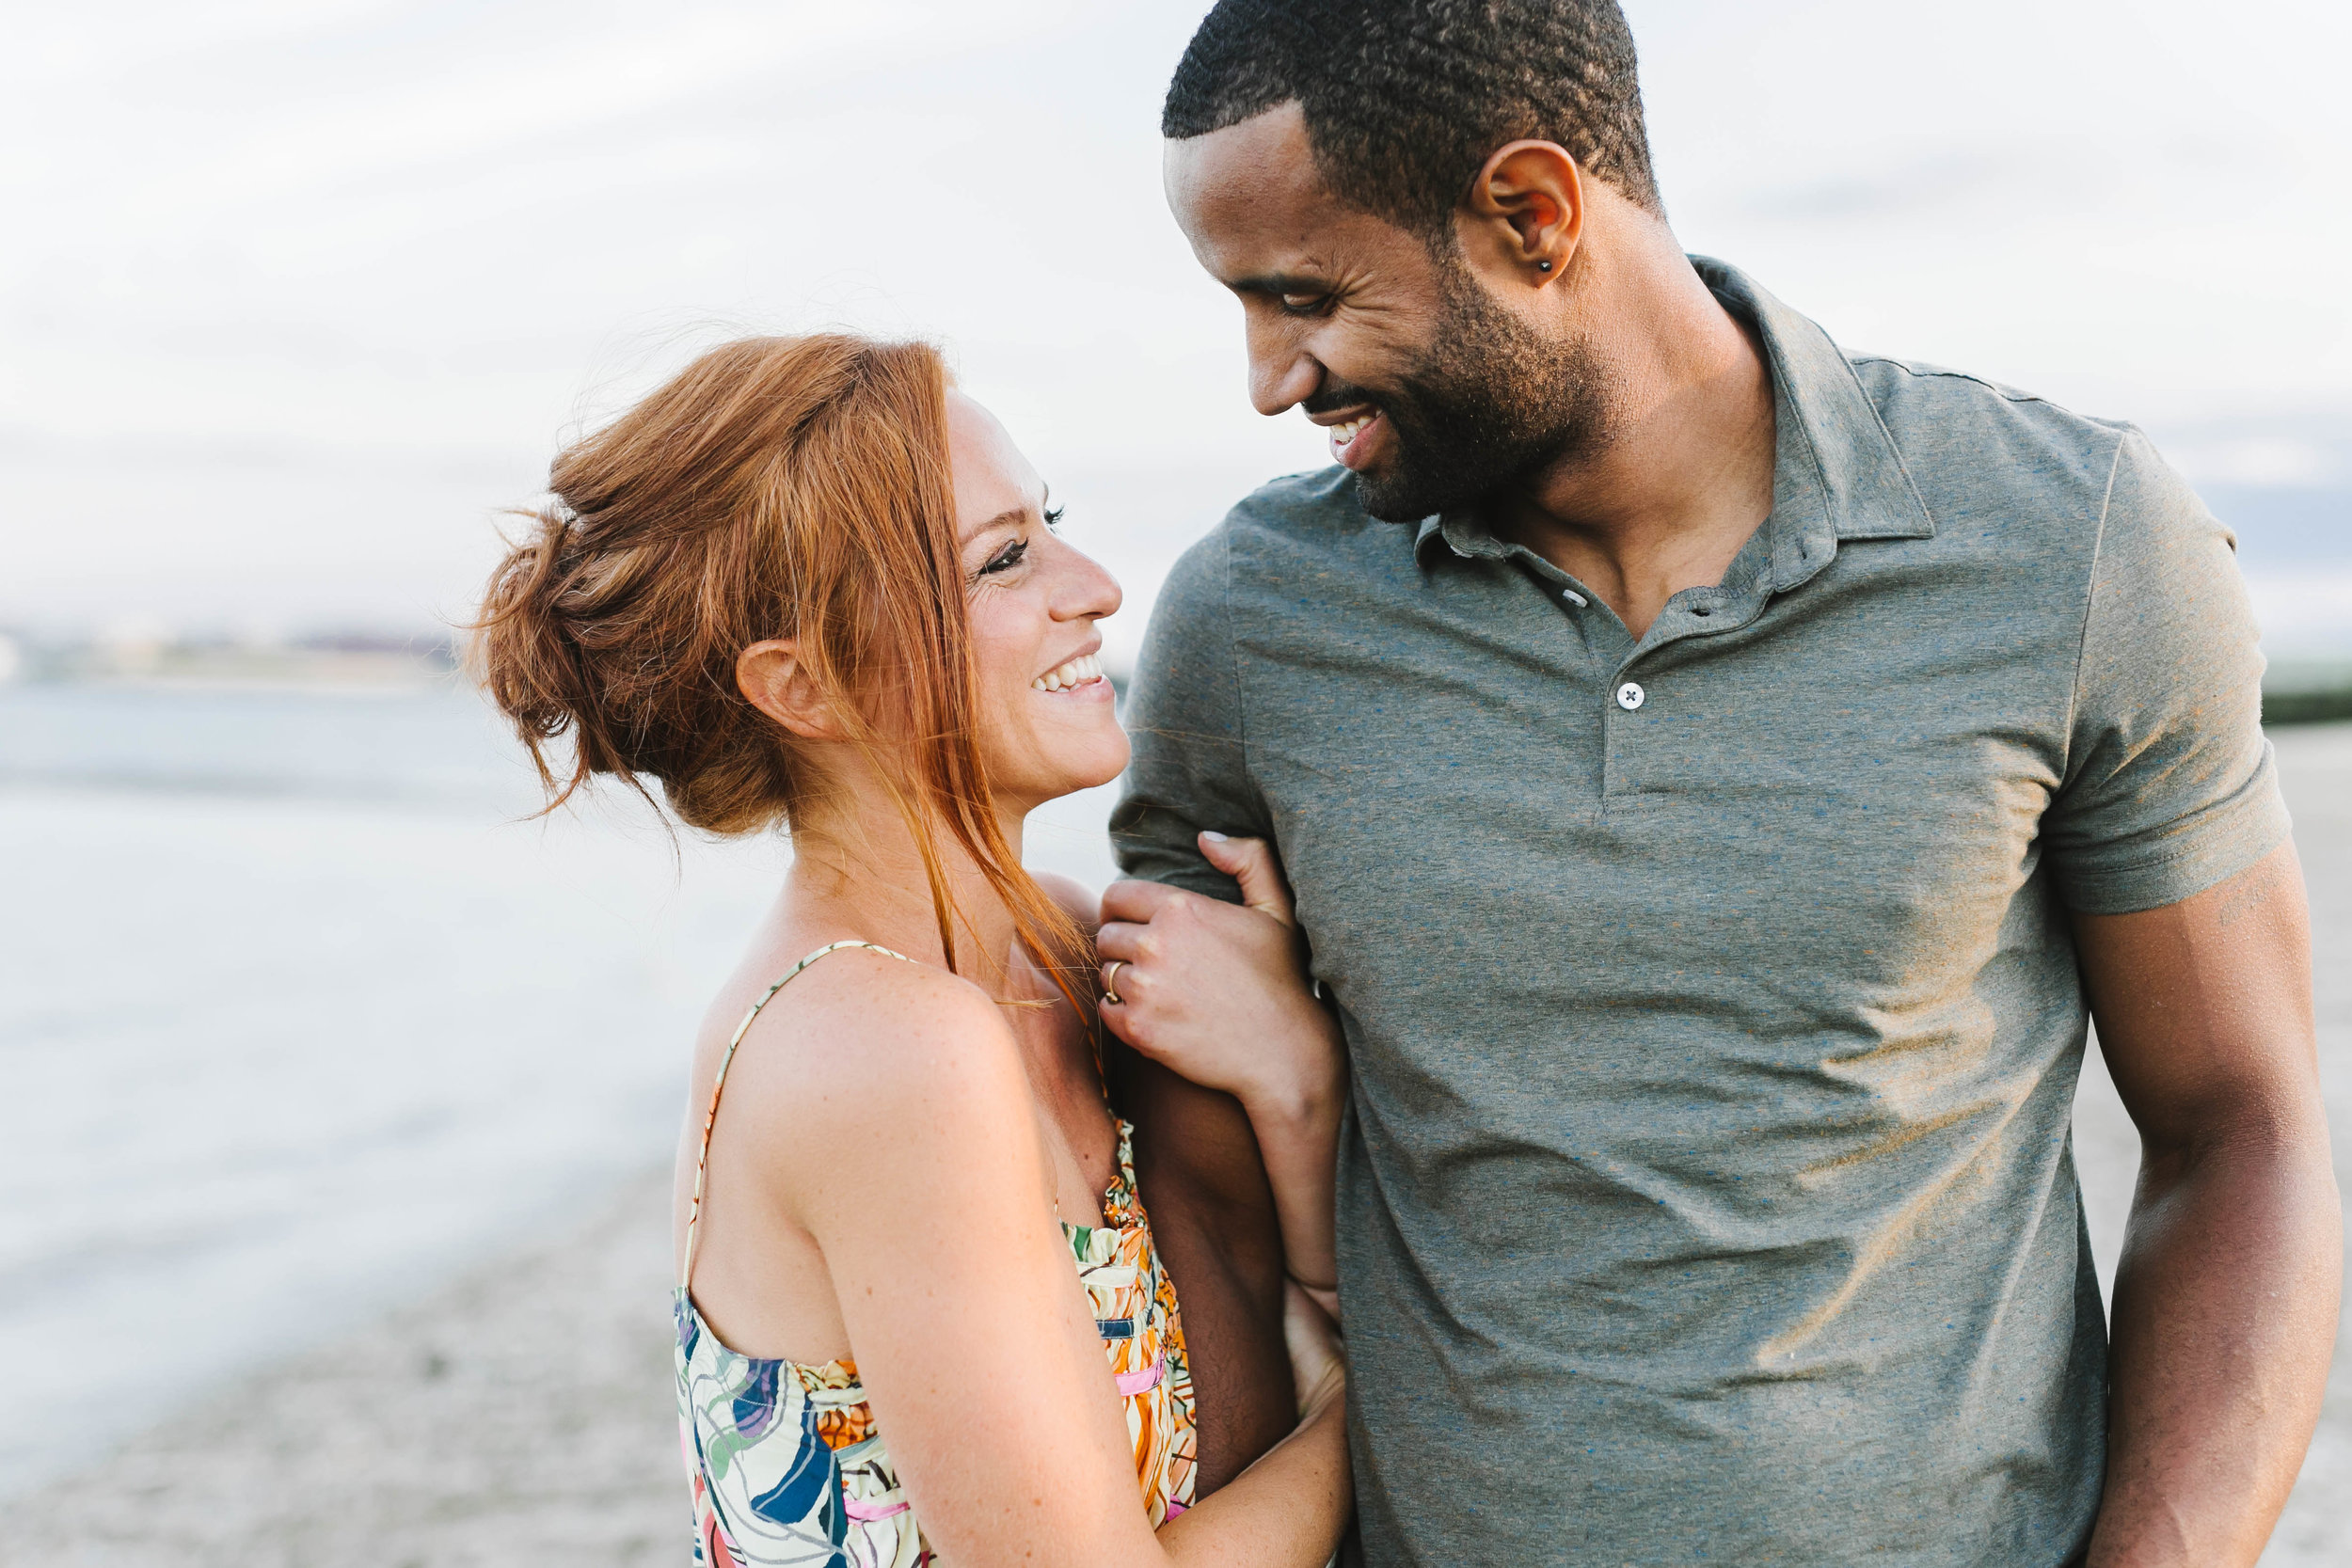 South End Boston Beach Shore Ocean Engagement Session - Emily Tebbetts Photography-76.jpg